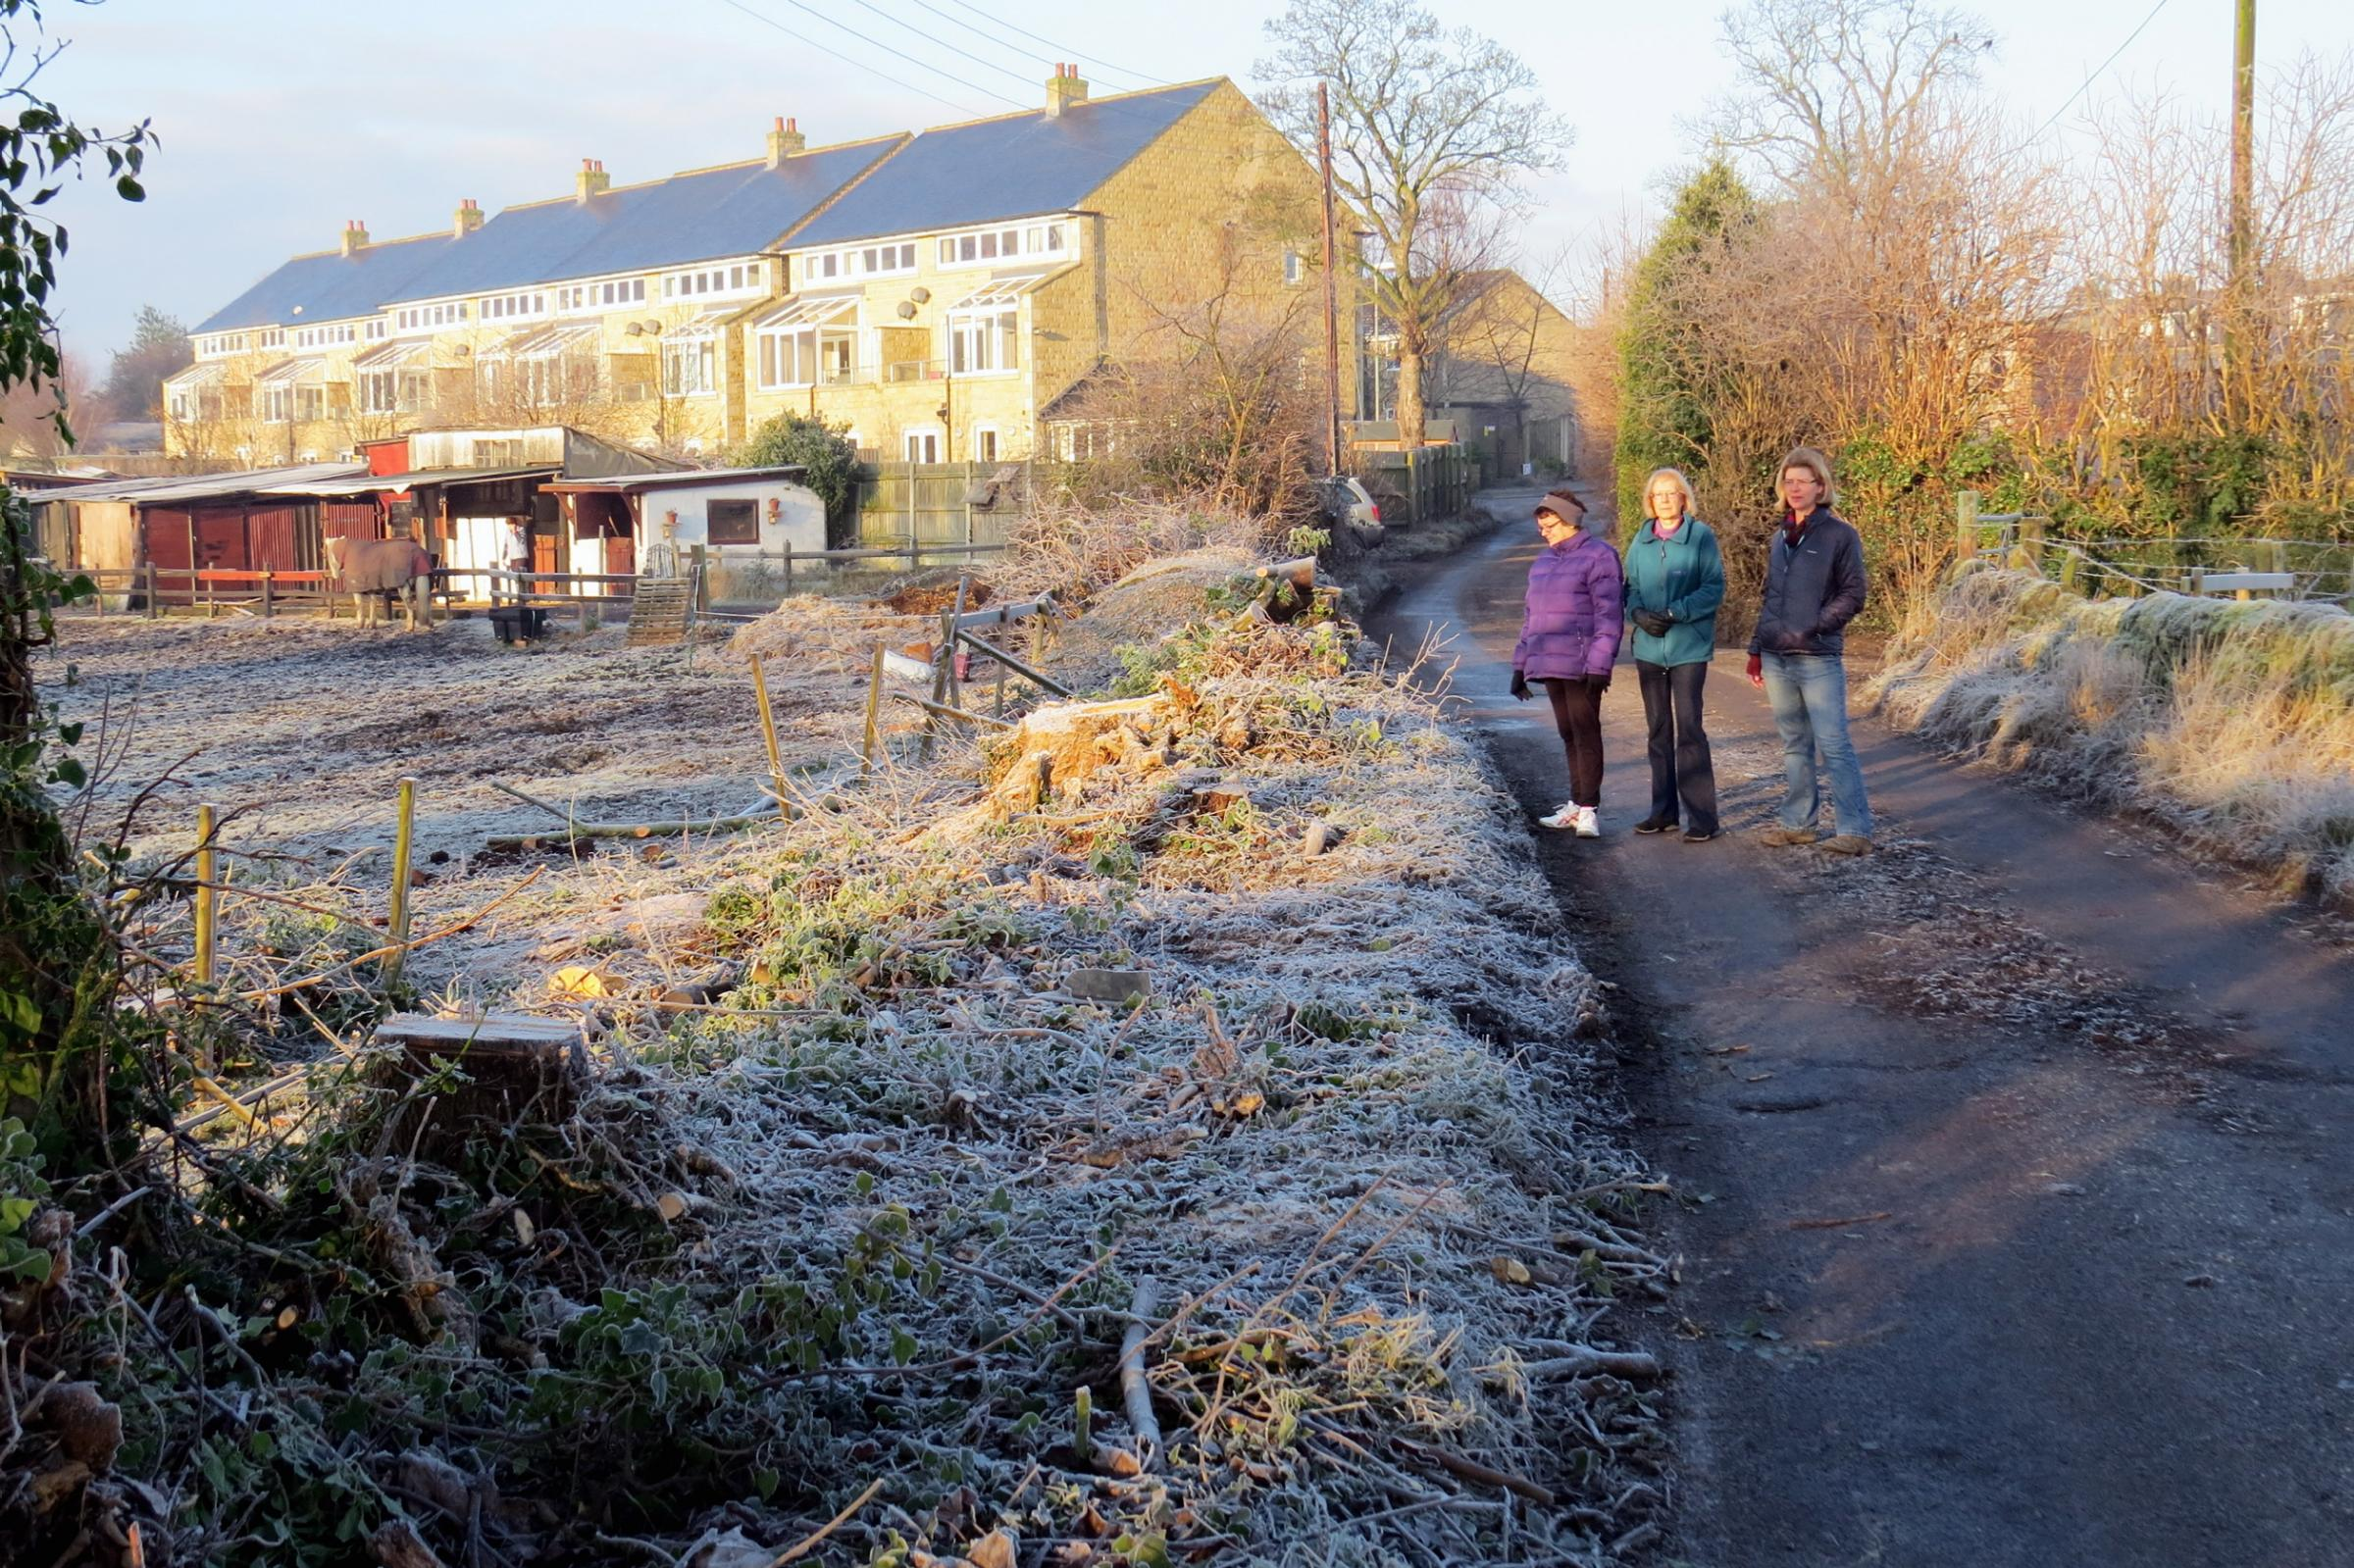 Surveying the site of the felled trees and hedgerow at East Busk Lane are, from left, residents Helen Thornton, Val Tate, and Alison Watson